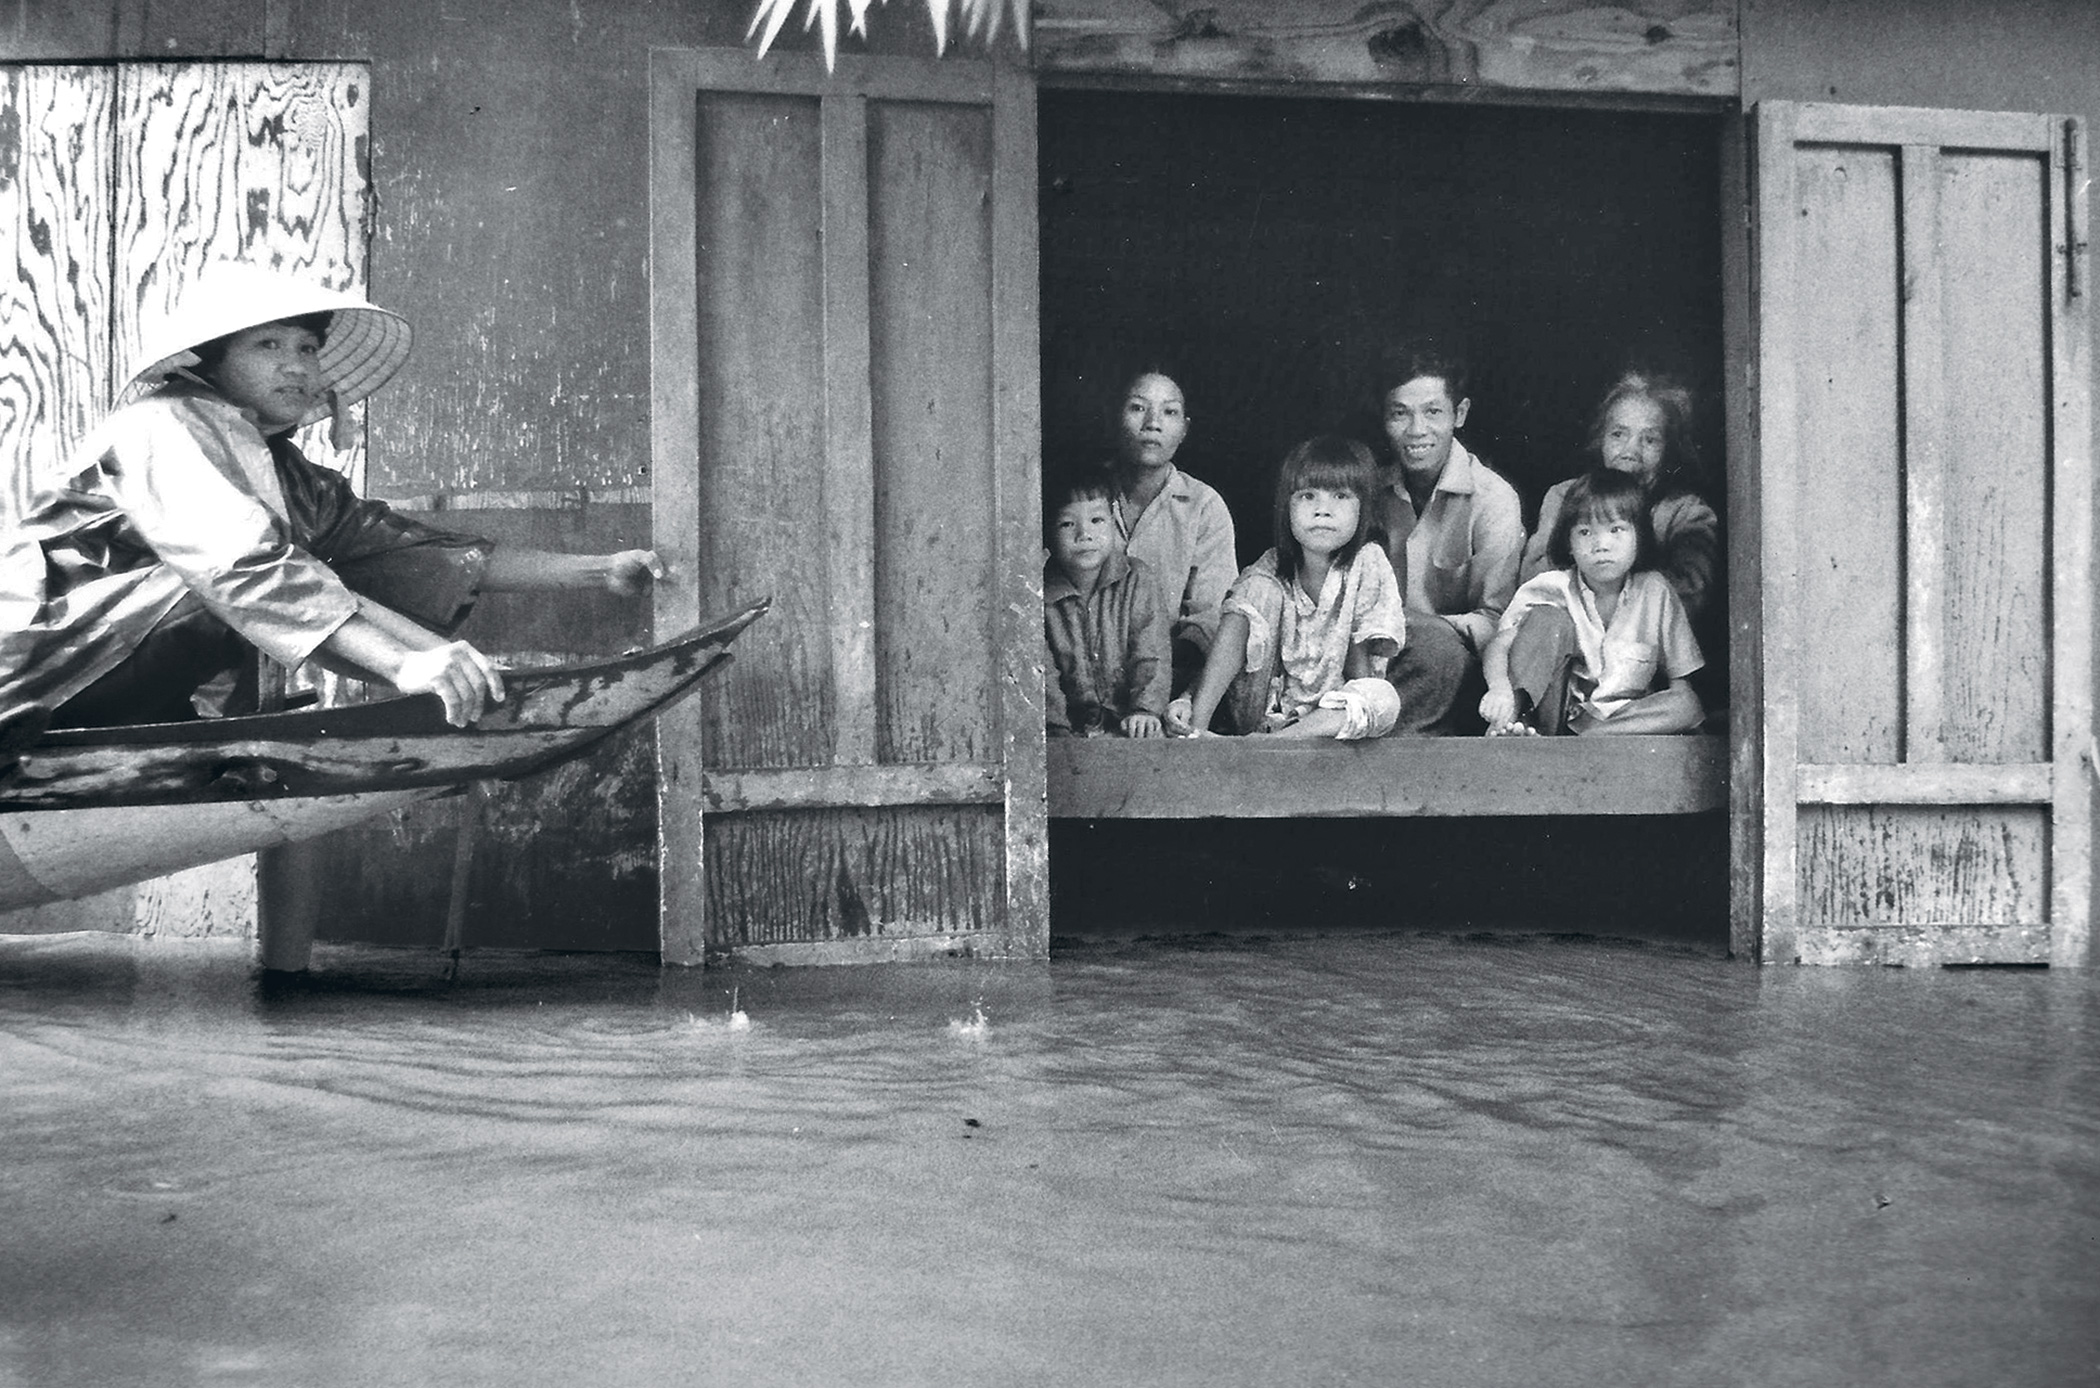 Lost in the flood. Interviewing a family trapped in their home in the aftermath of a typhoon in Huê, Vietnam, in 1991.